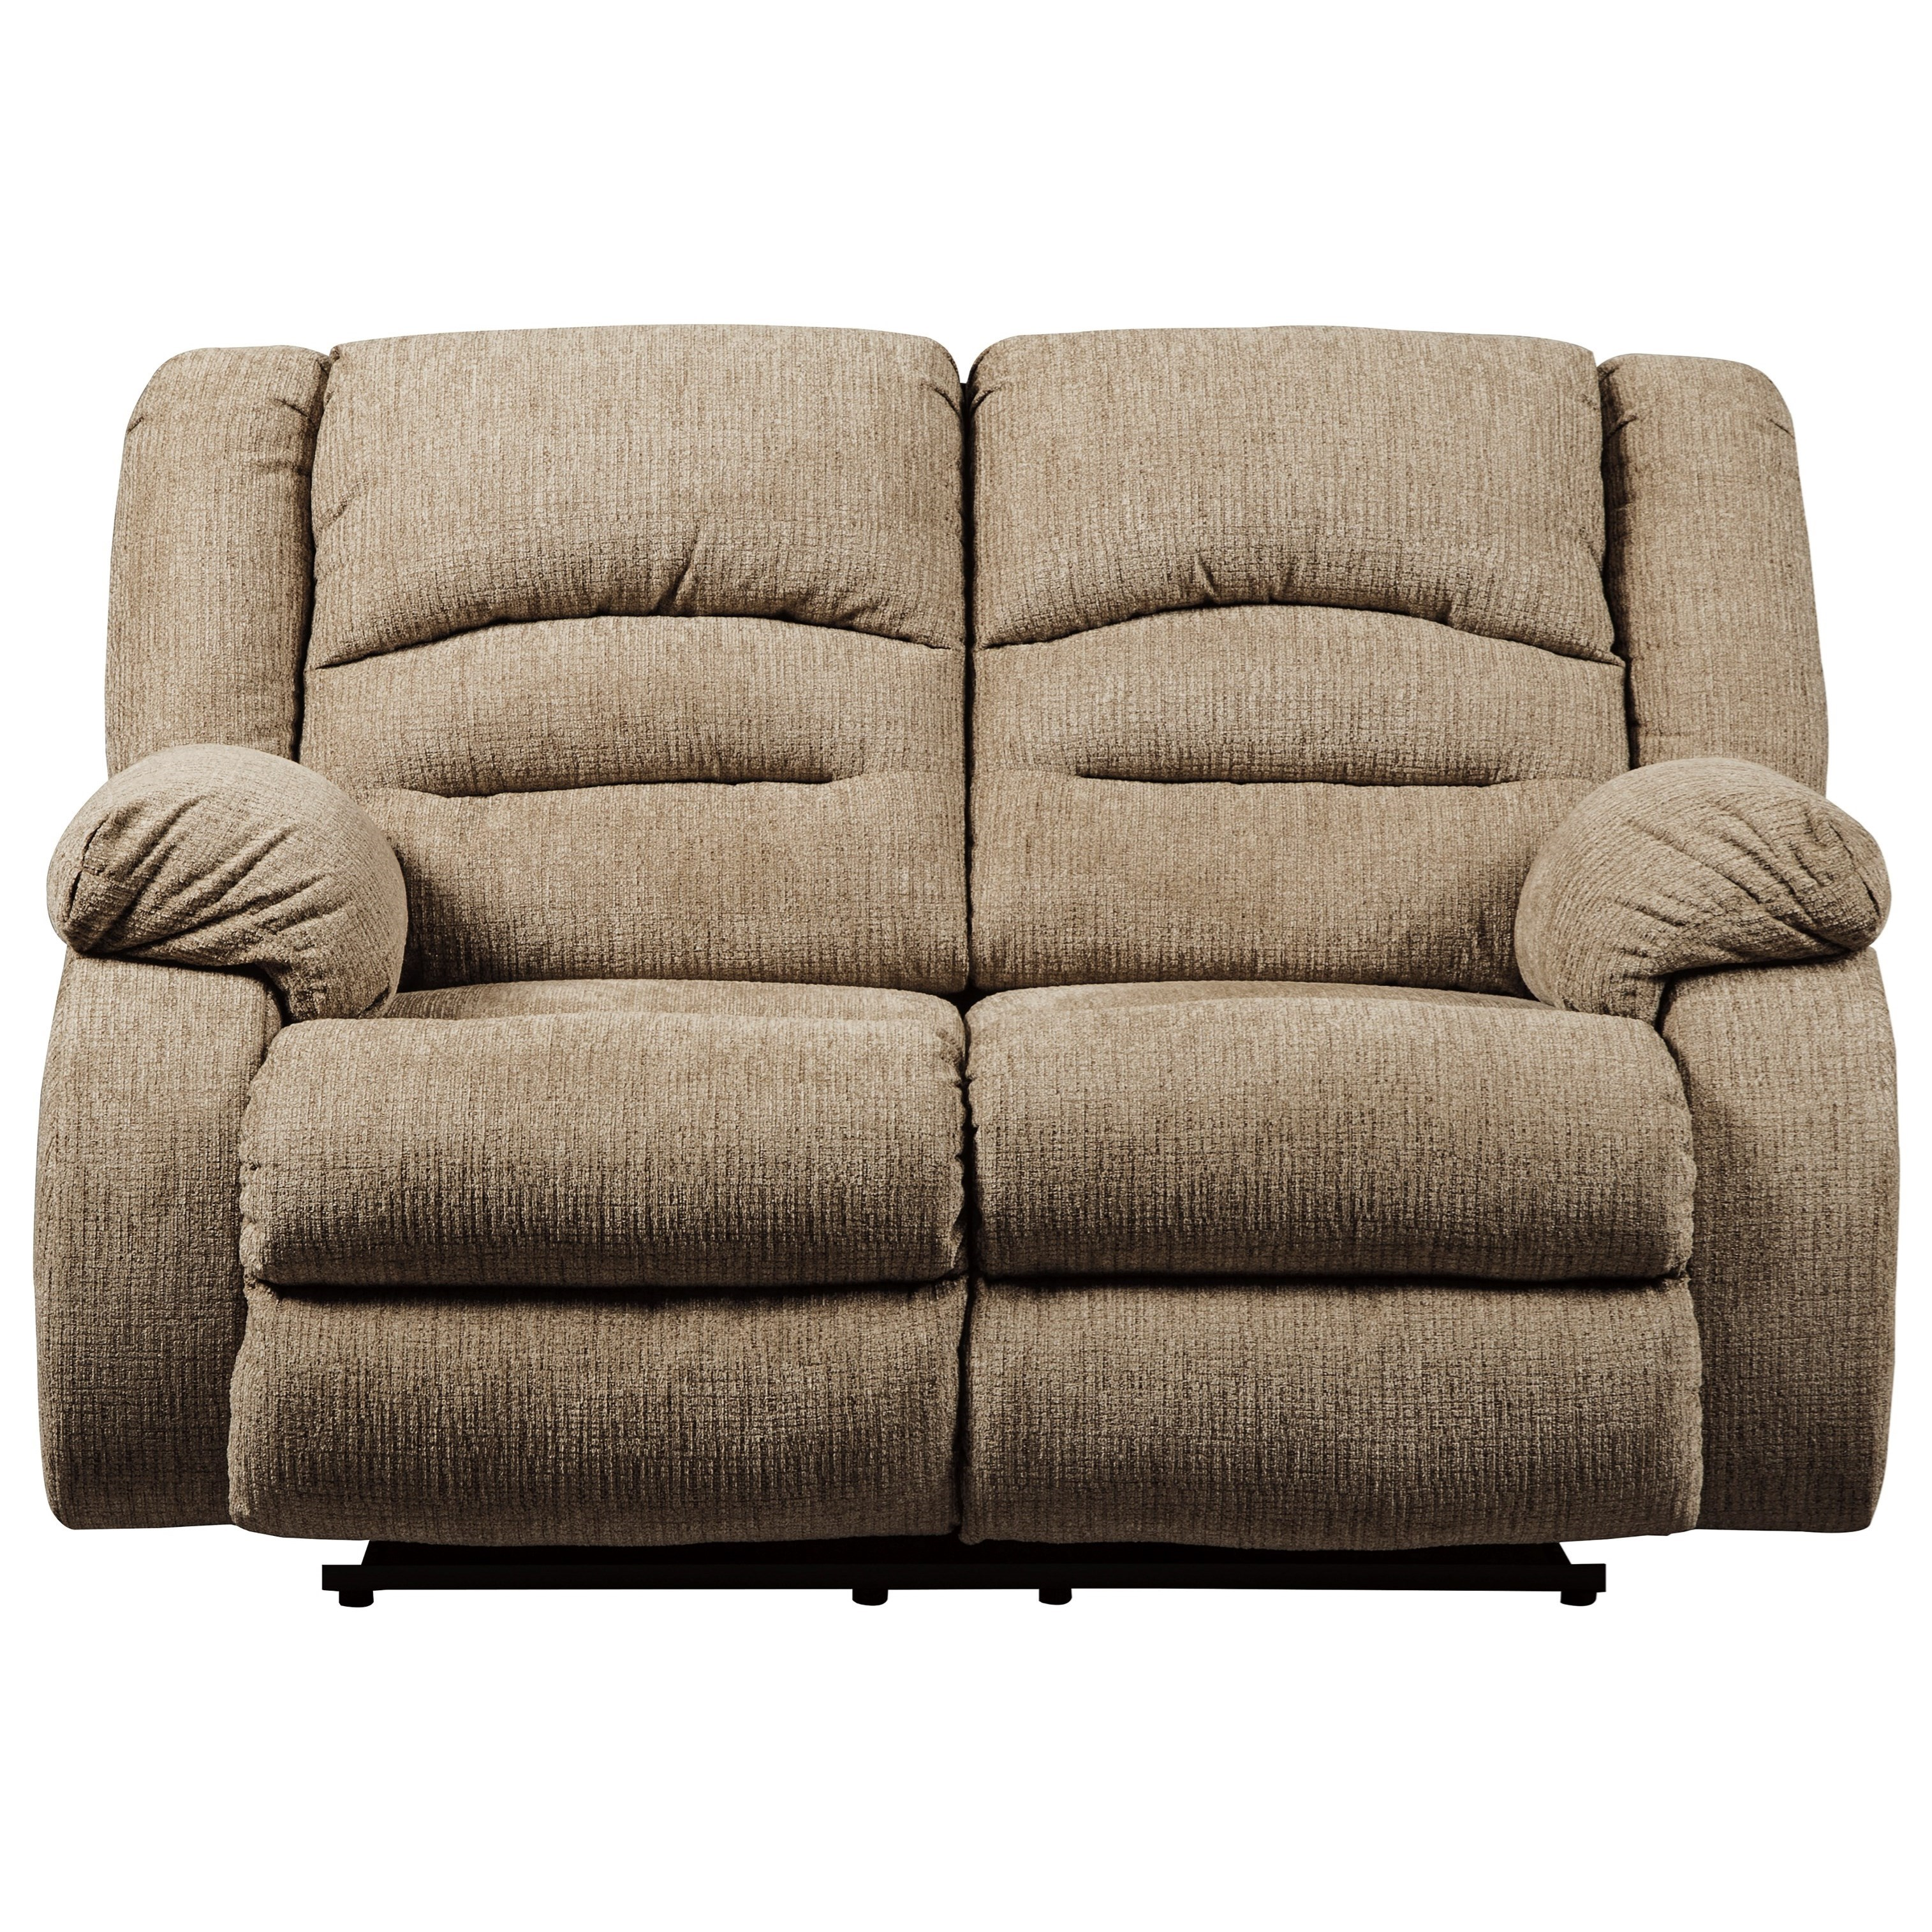 Signature Design By Ashley Labarre Power Reclining Loveseat With Adjustable Headrest Darvin